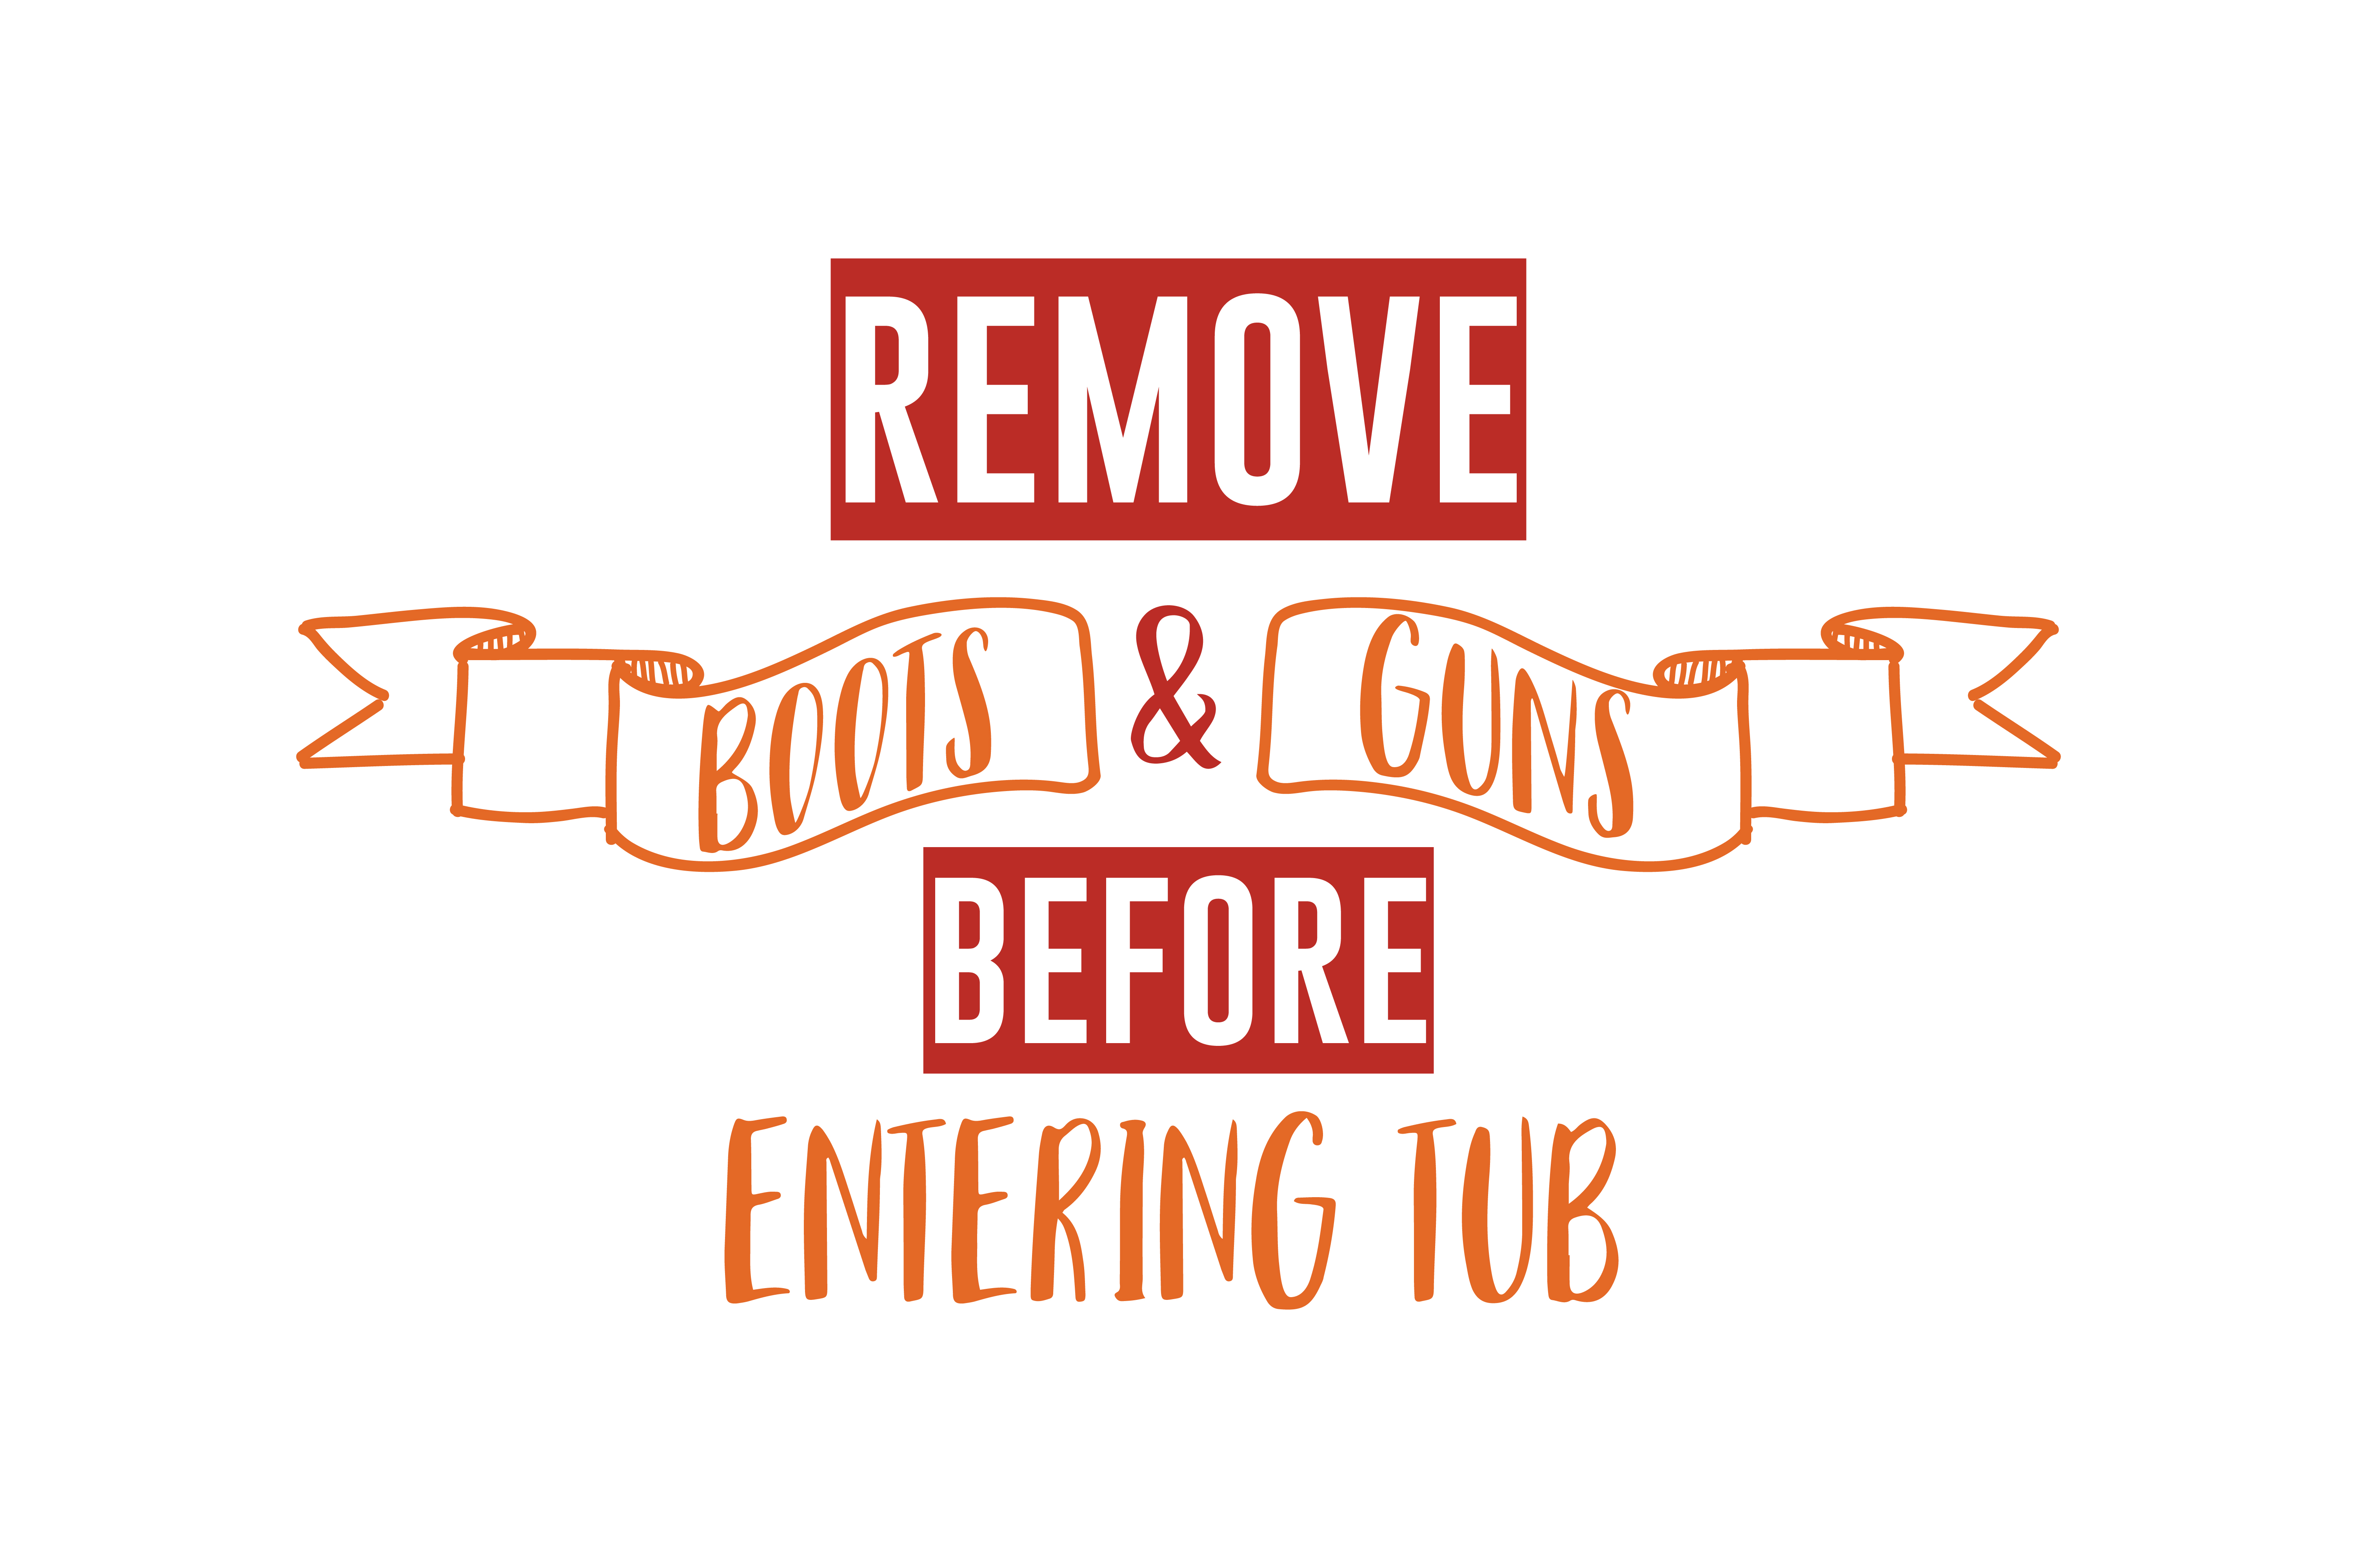 Download Free Remove Boots Guns Before Entering Tub Quote Svg Cut Graphic By for Cricut Explore, Silhouette and other cutting machines.